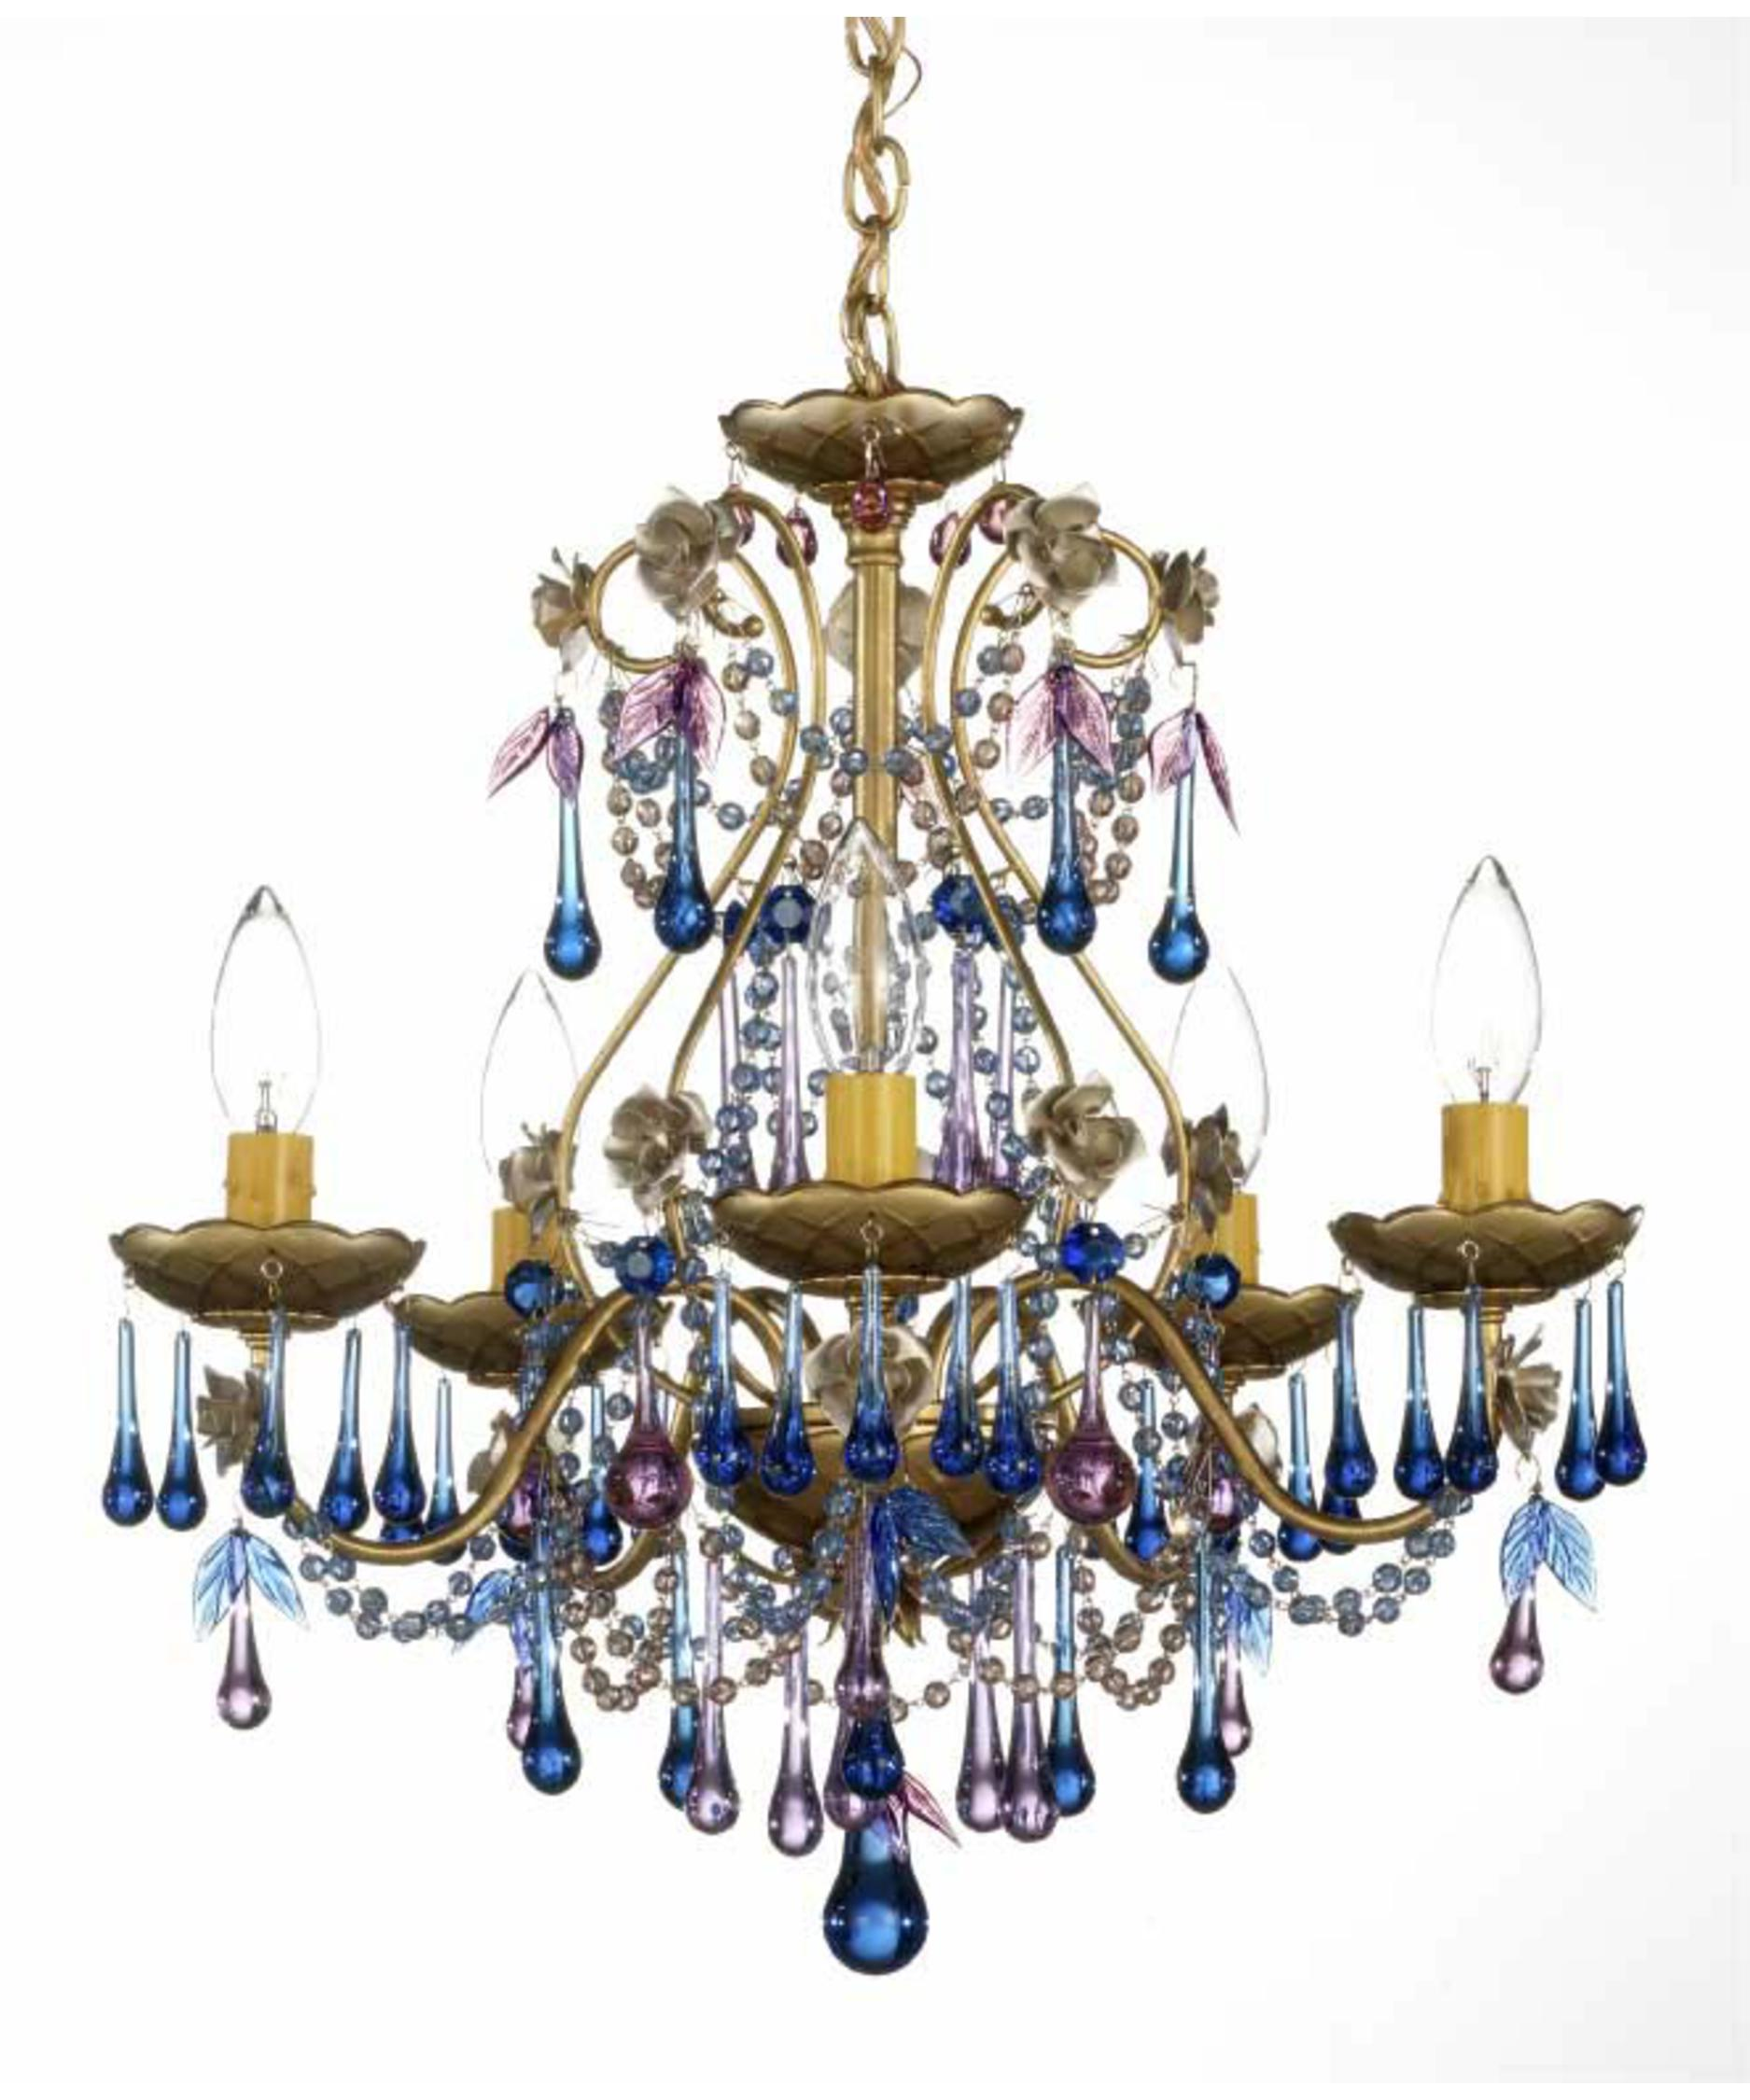 schonbek rose 17 inch wide 5 light mini chandelier capitol lighting - Schonbek Lighting